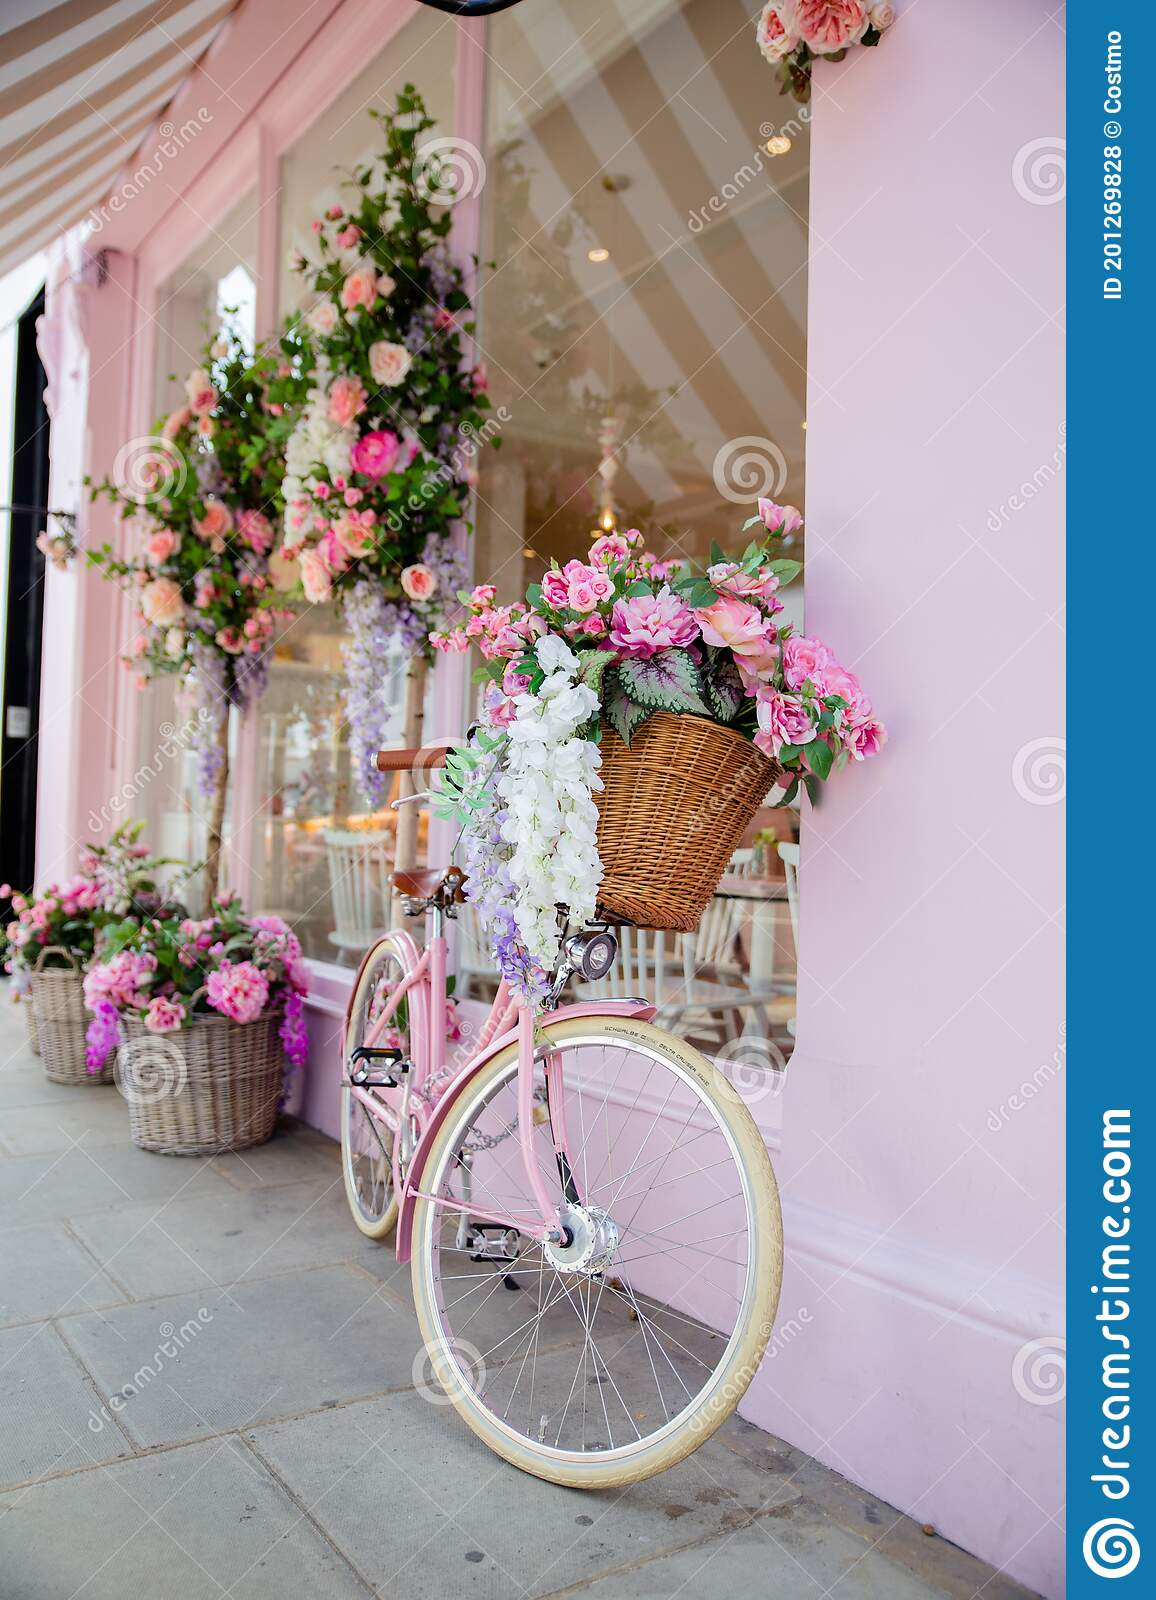 Pink Bicycle Surrounded By Artificial Flowers Outside A Pink Cake Shop Editorial Stock Photo Image Of Basket Bakery 201269828